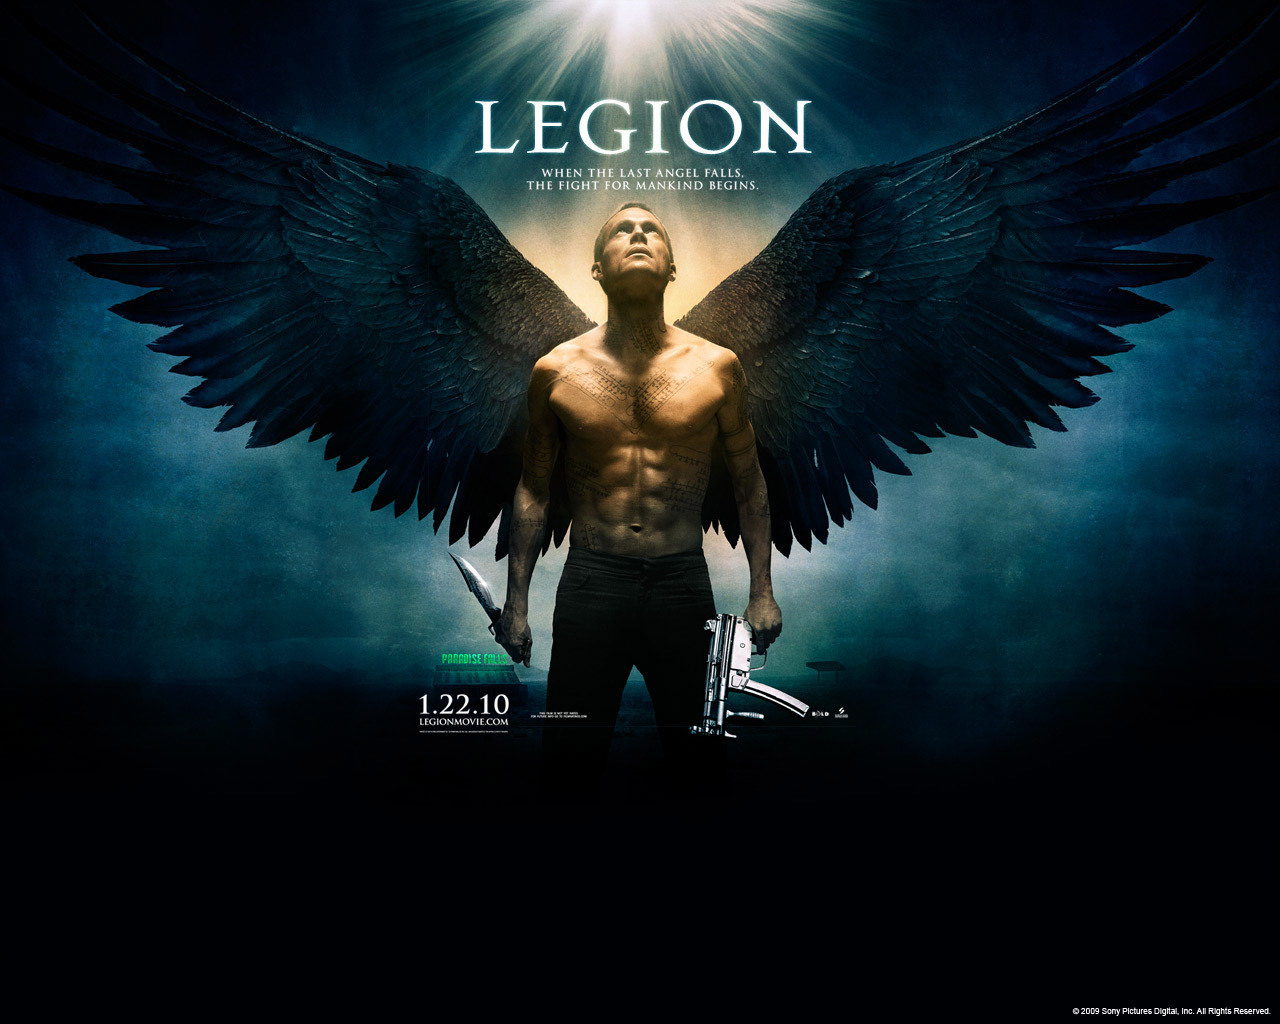 LEGION - LEGION Wallpaper (10531062) - Fanpop